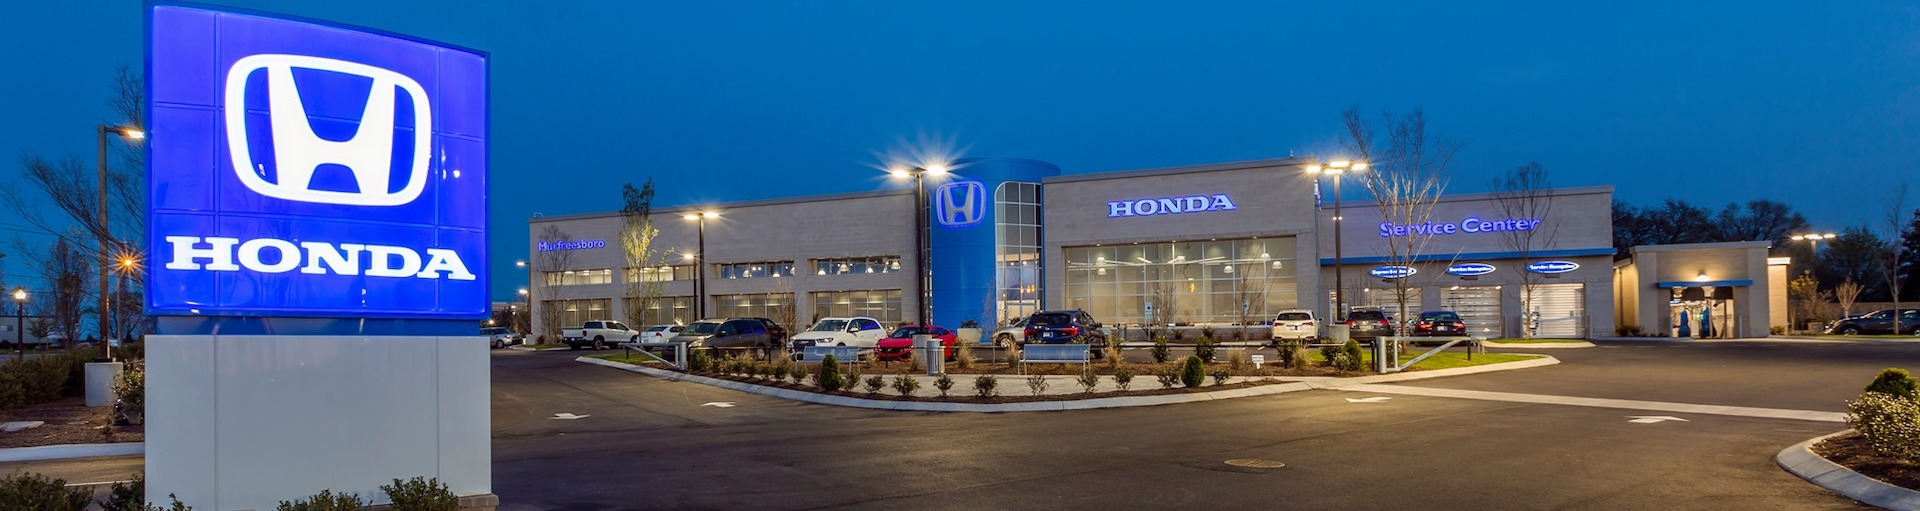 Honda of Murfreesboro Brake Services